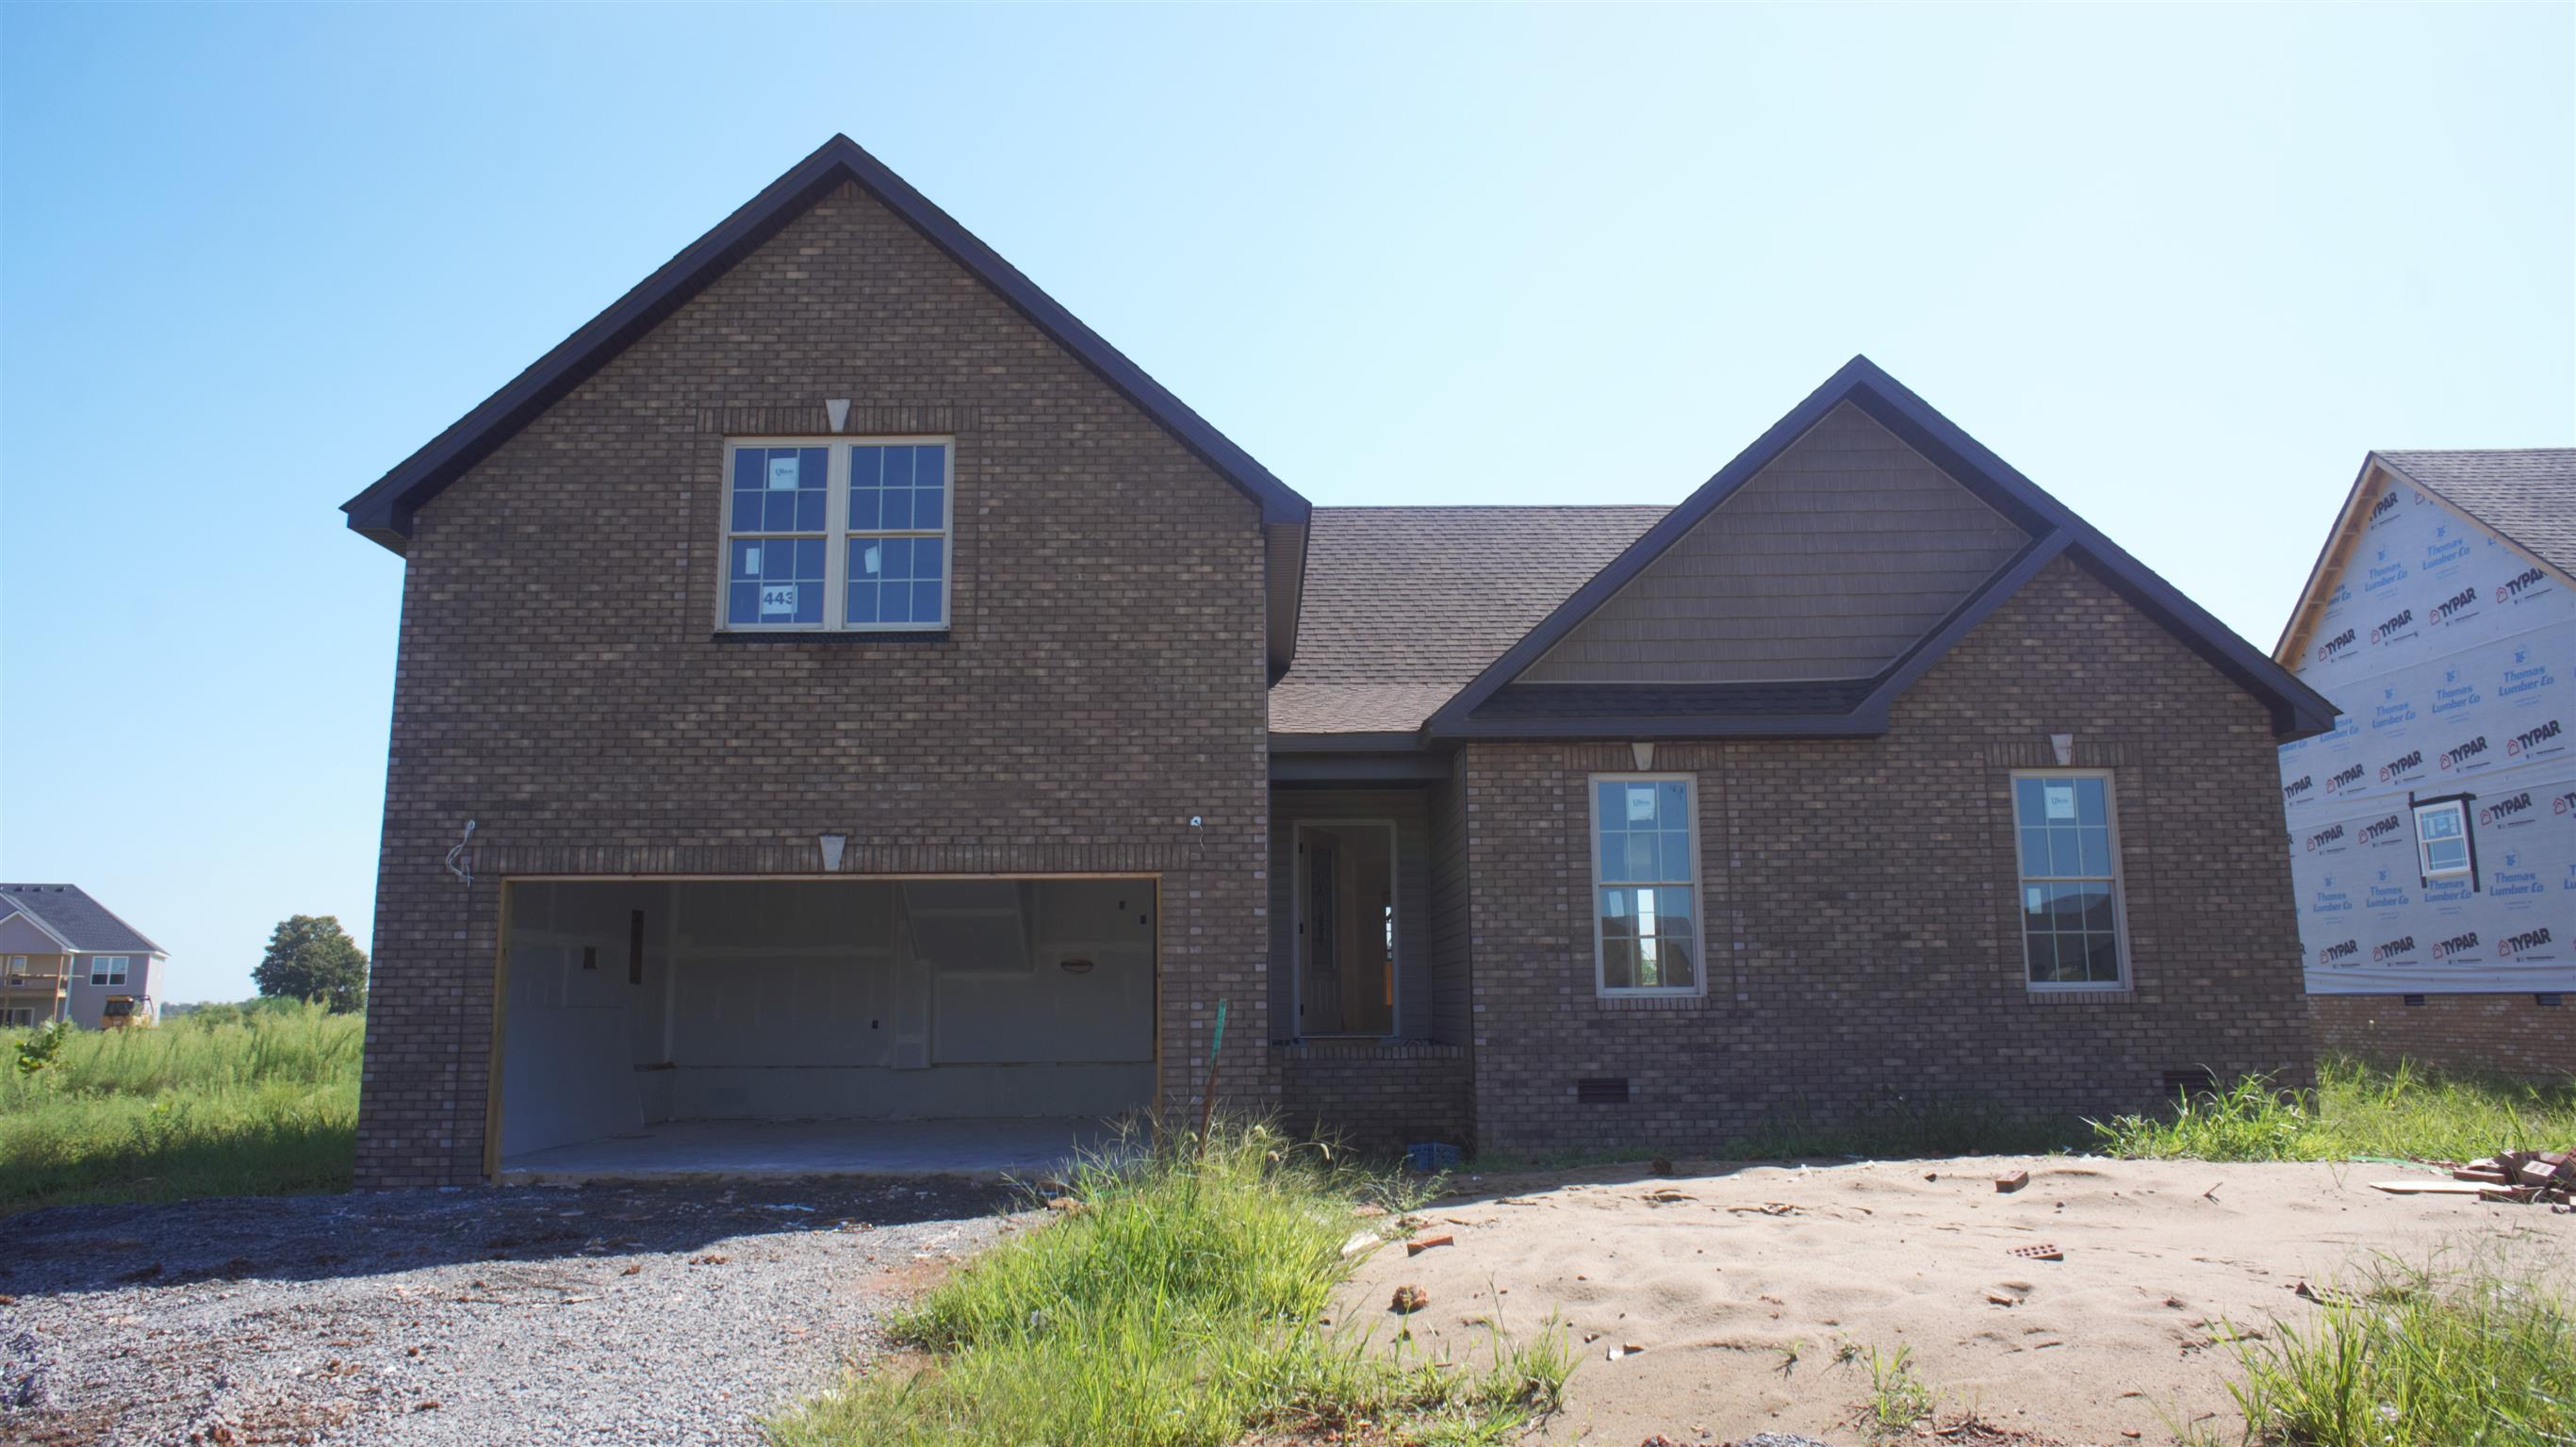 443 Autumnwood Farms , Clarksville, TN 37042 - Clarksville, TN real estate listing